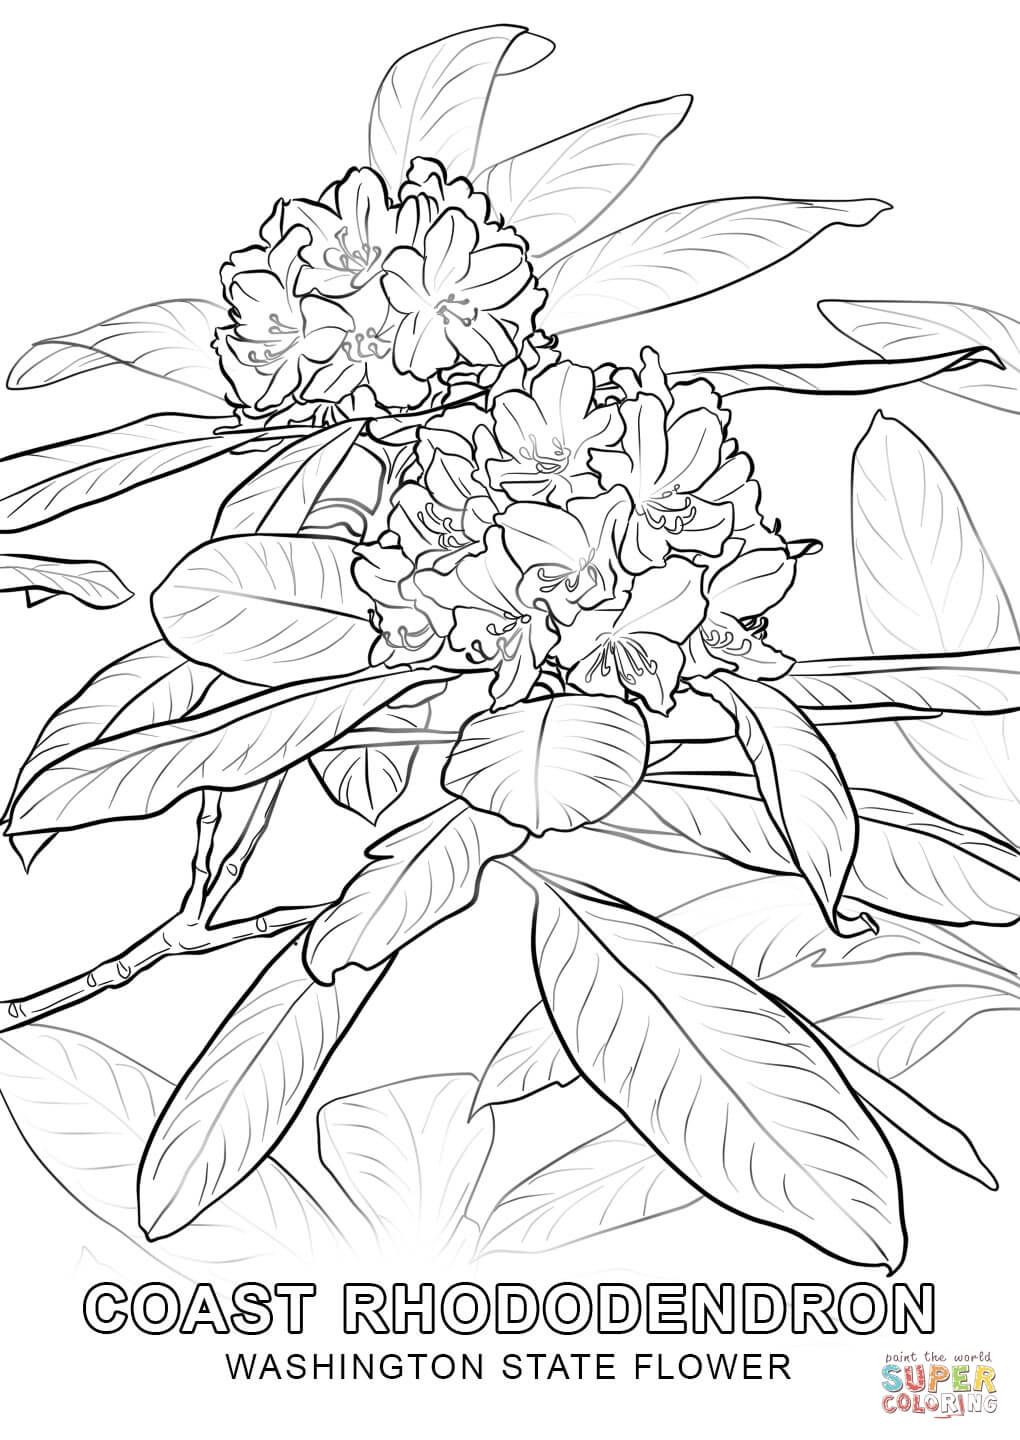 Washington State Flower coloring page | Free Printable Coloring ...